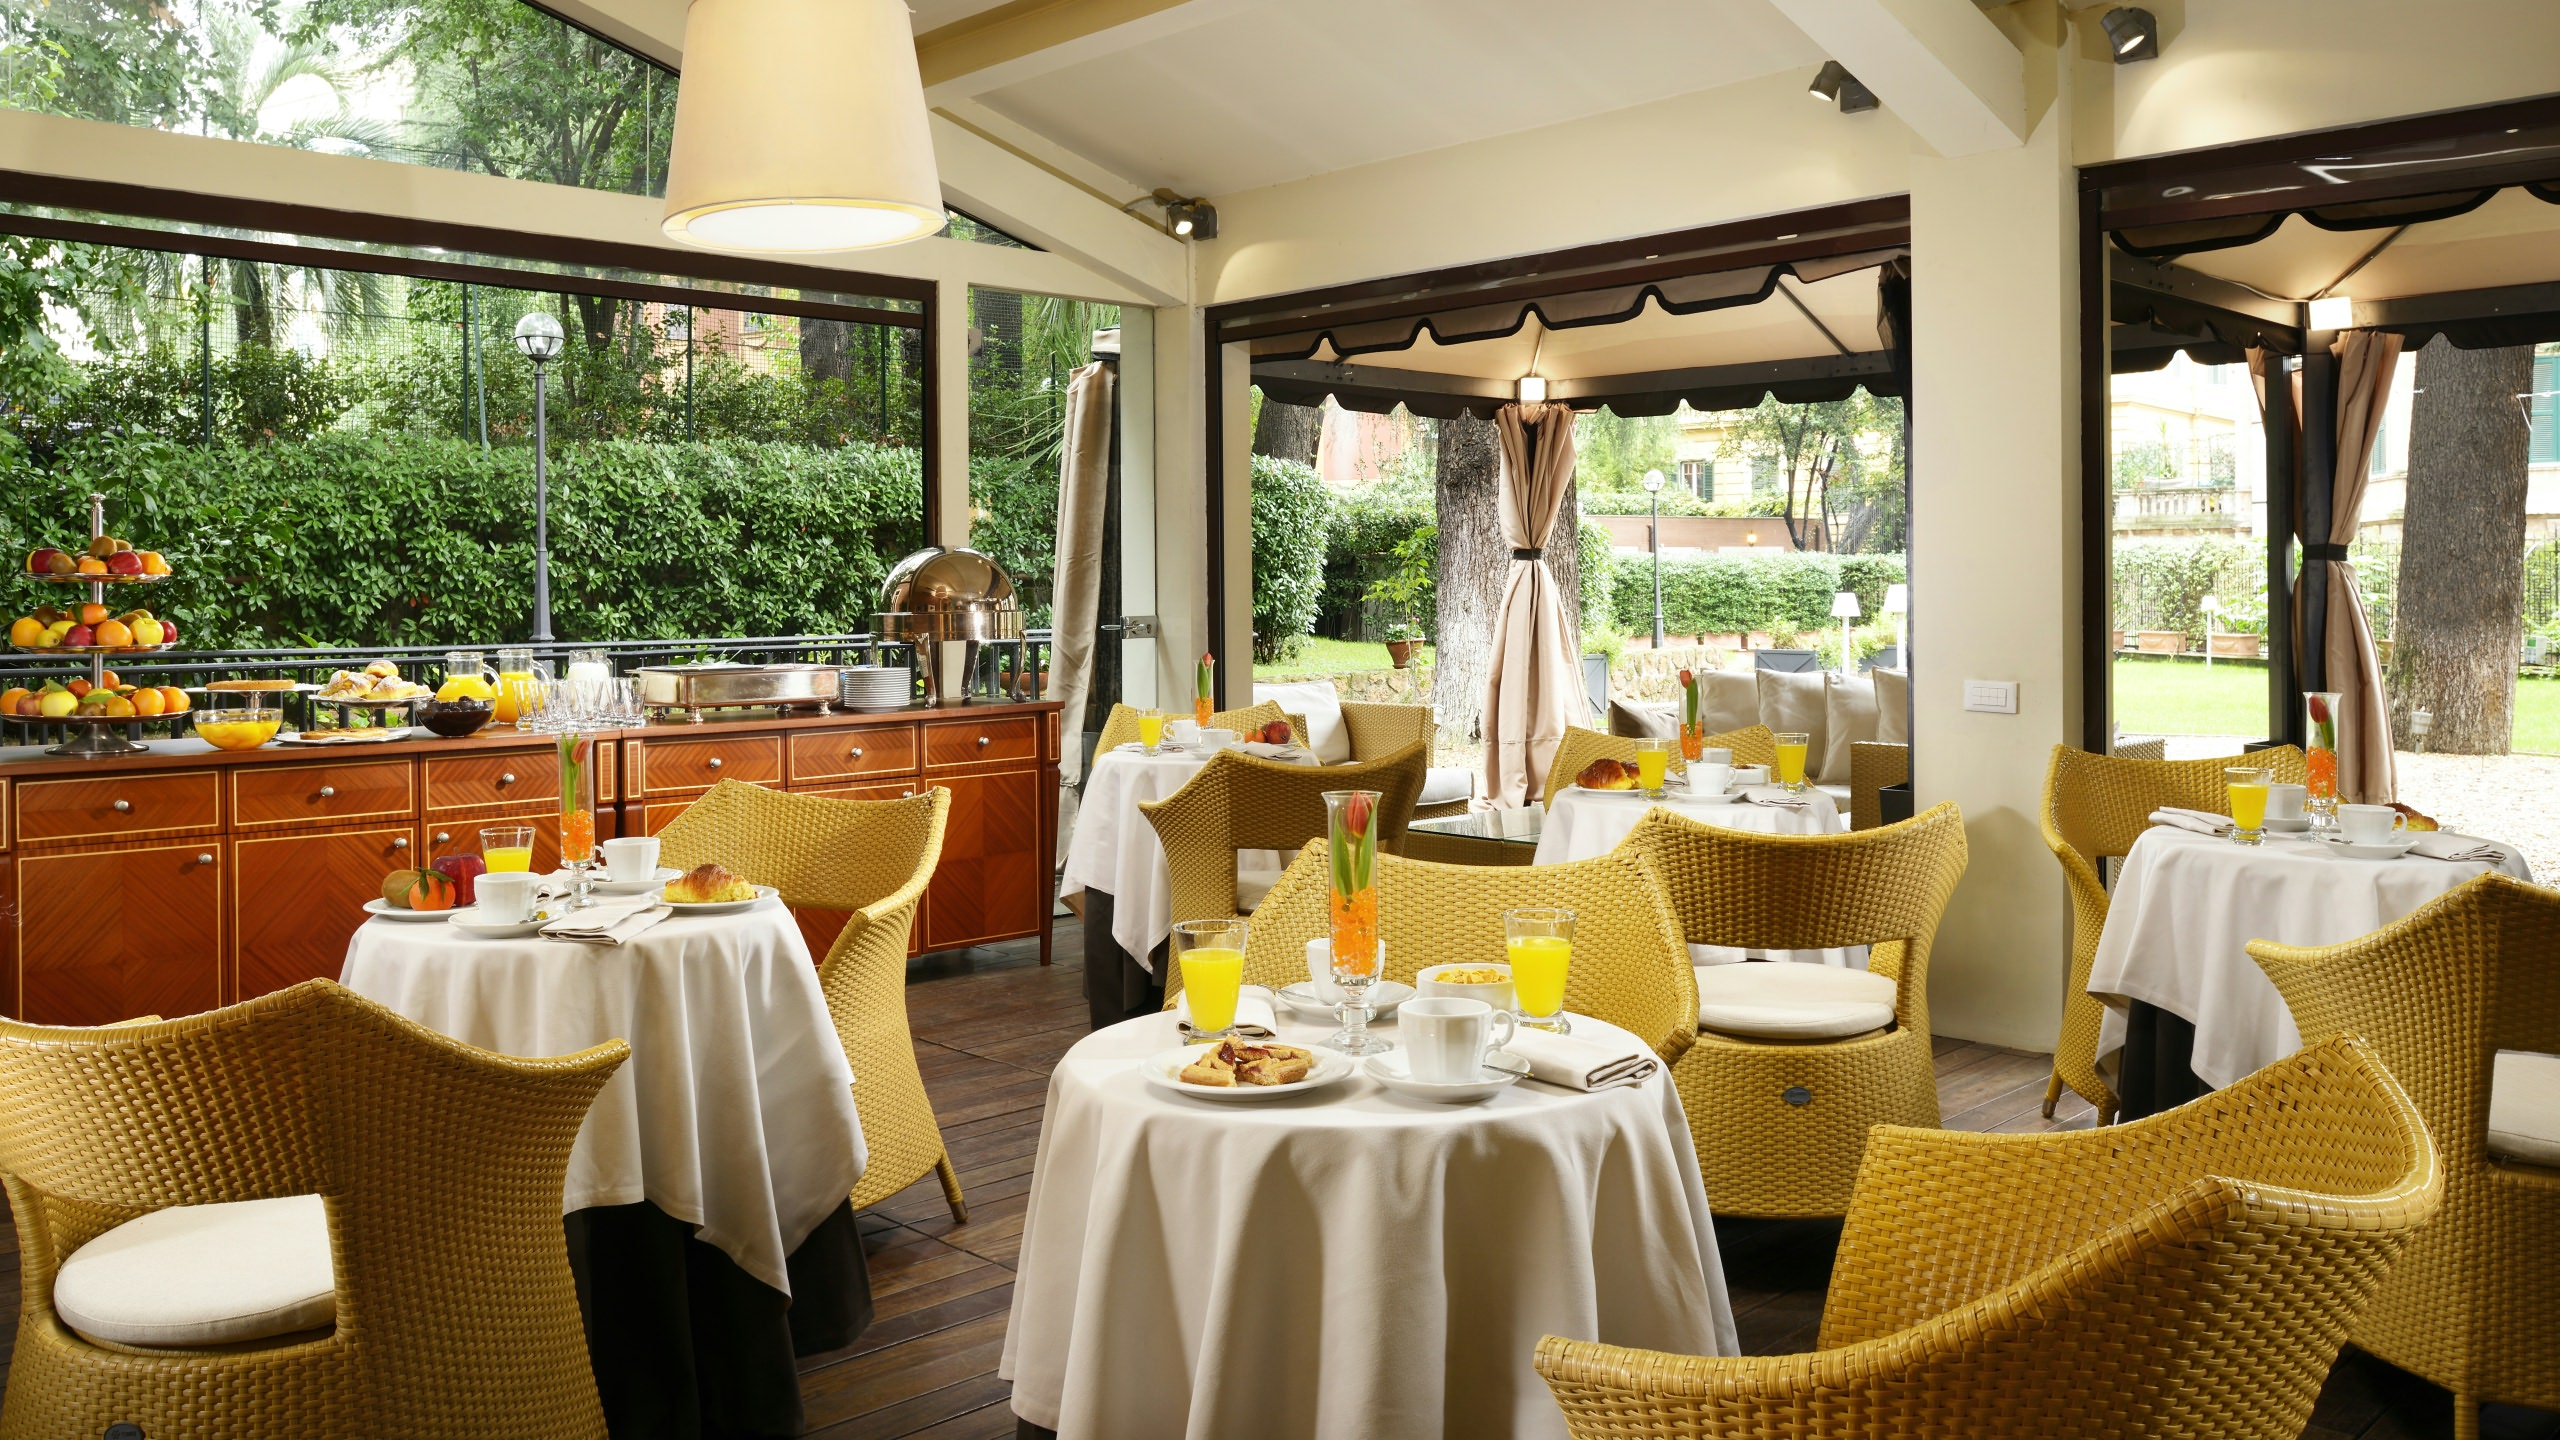 hotel-principe-torlonia-common-areas-03